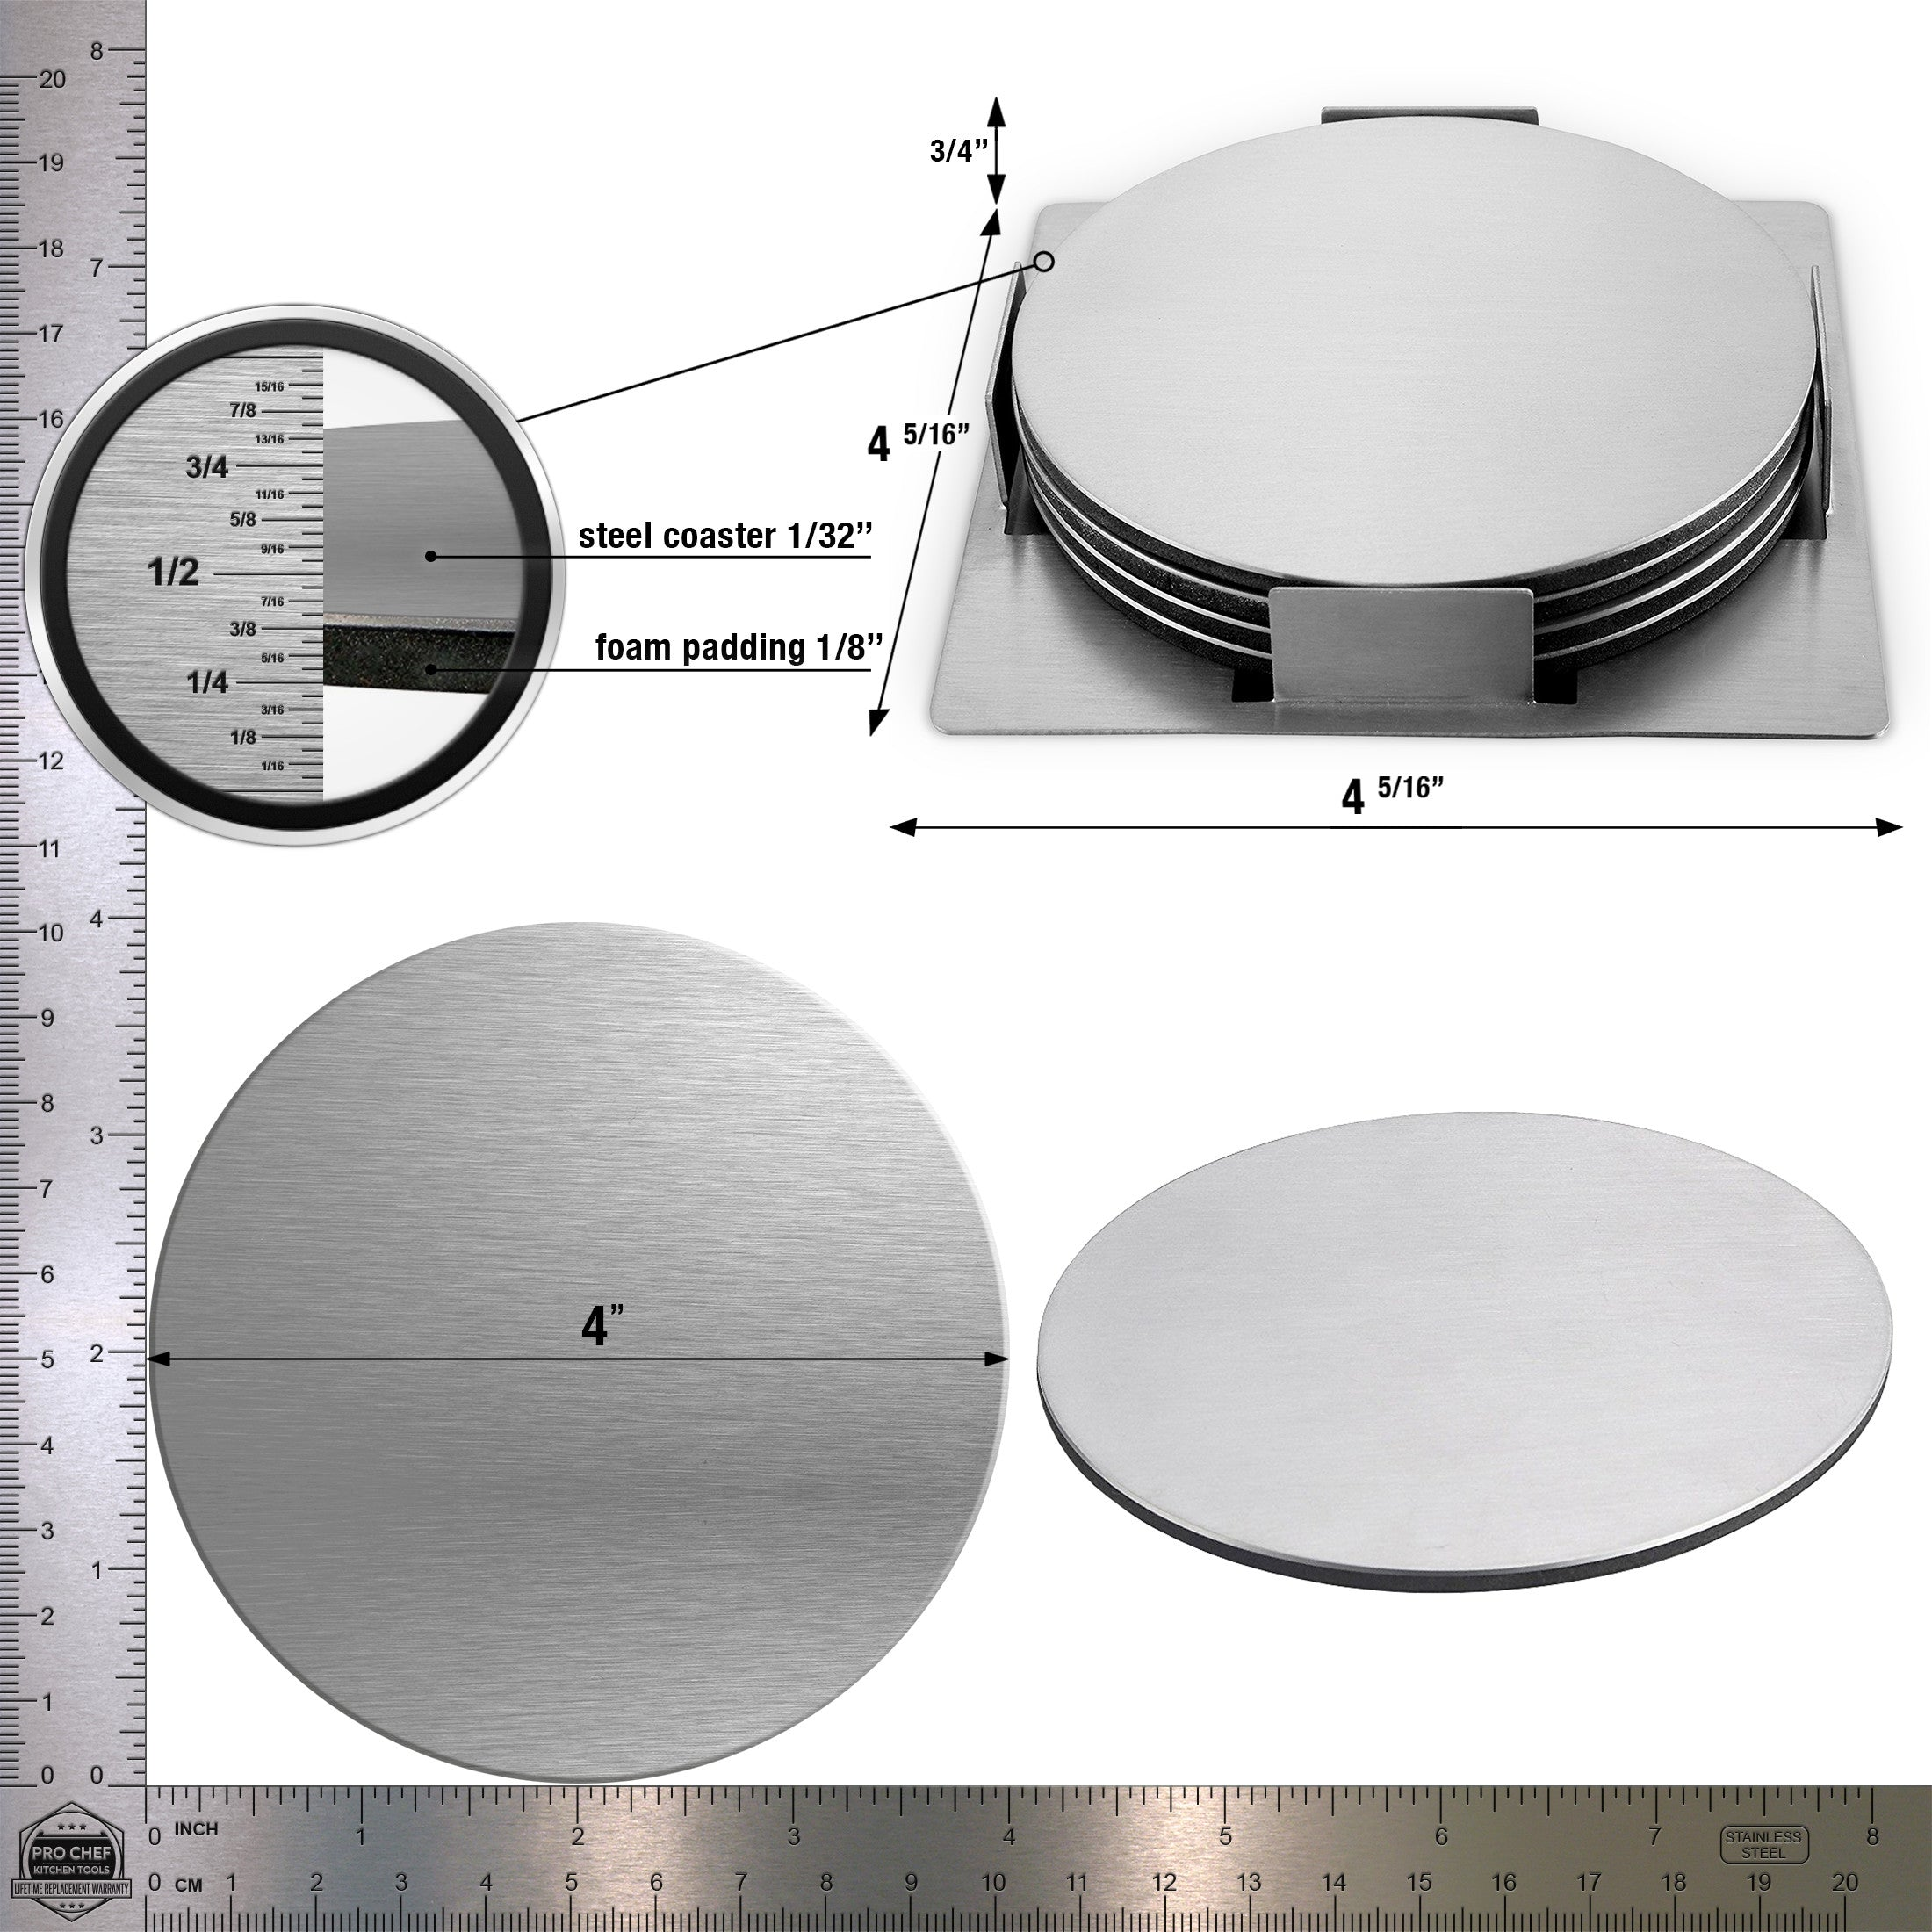 stainless drink coasters set of   pro chef kitchen tools - pro chef kitchen tools stainless steel beverage coaster set  set of round table coasters to prevent tabletop stains and scratches from glasses